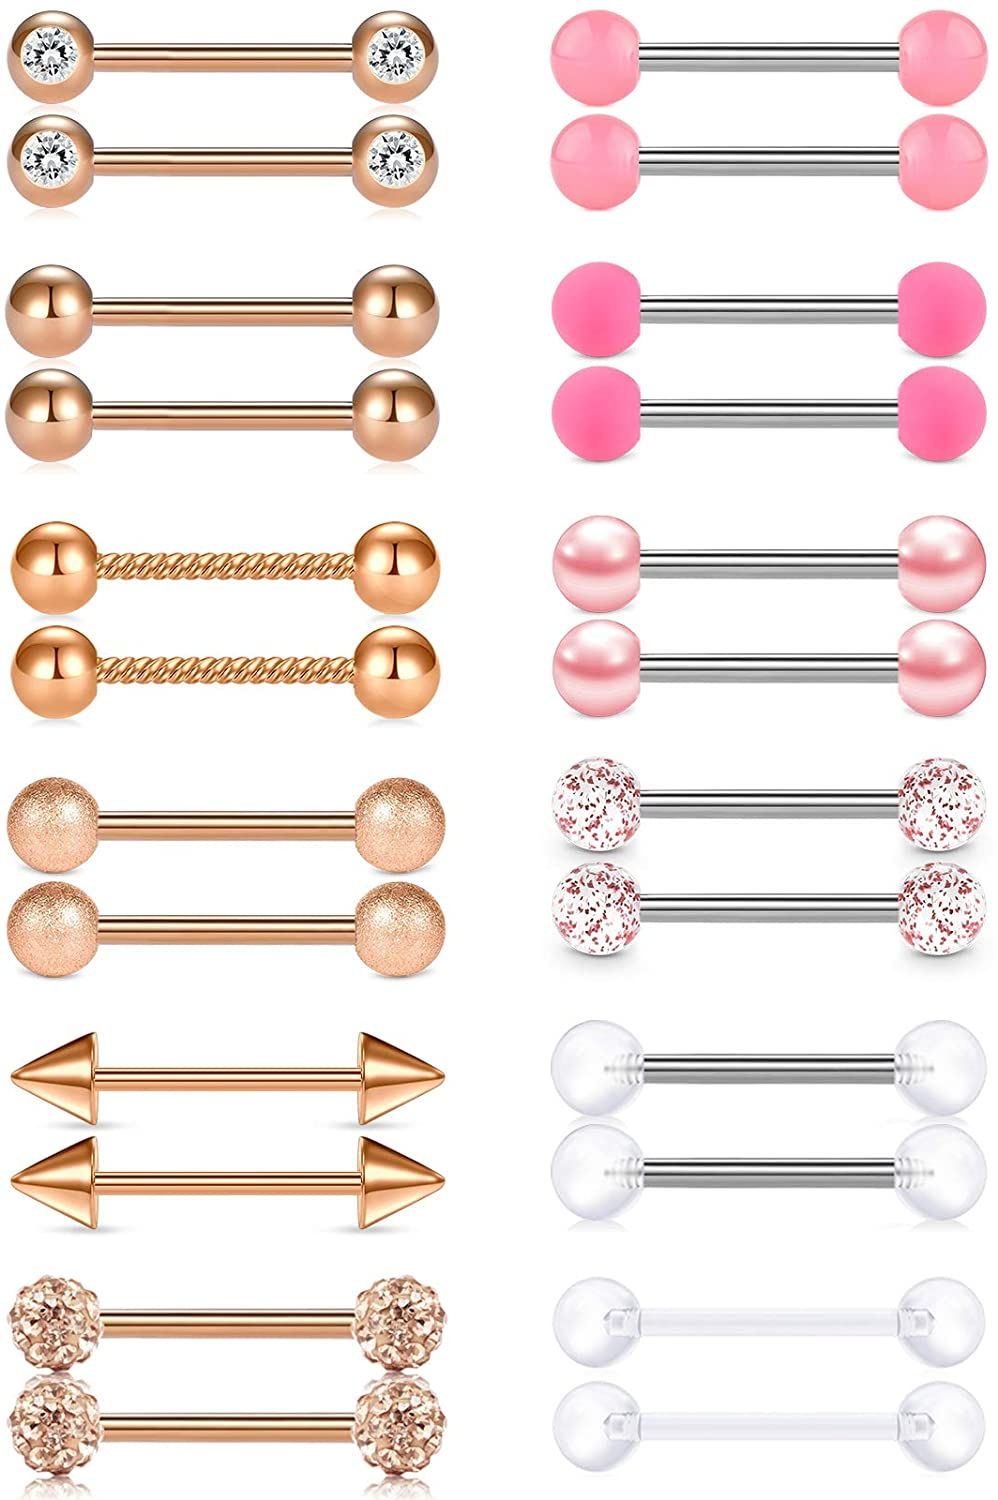 Anicina 14G Tongue Rings Stainless Steel Nipplerings Straight Nipple Tongue Piercing Barbell 16mm 18mm Nipple Tongue Piercing Bar